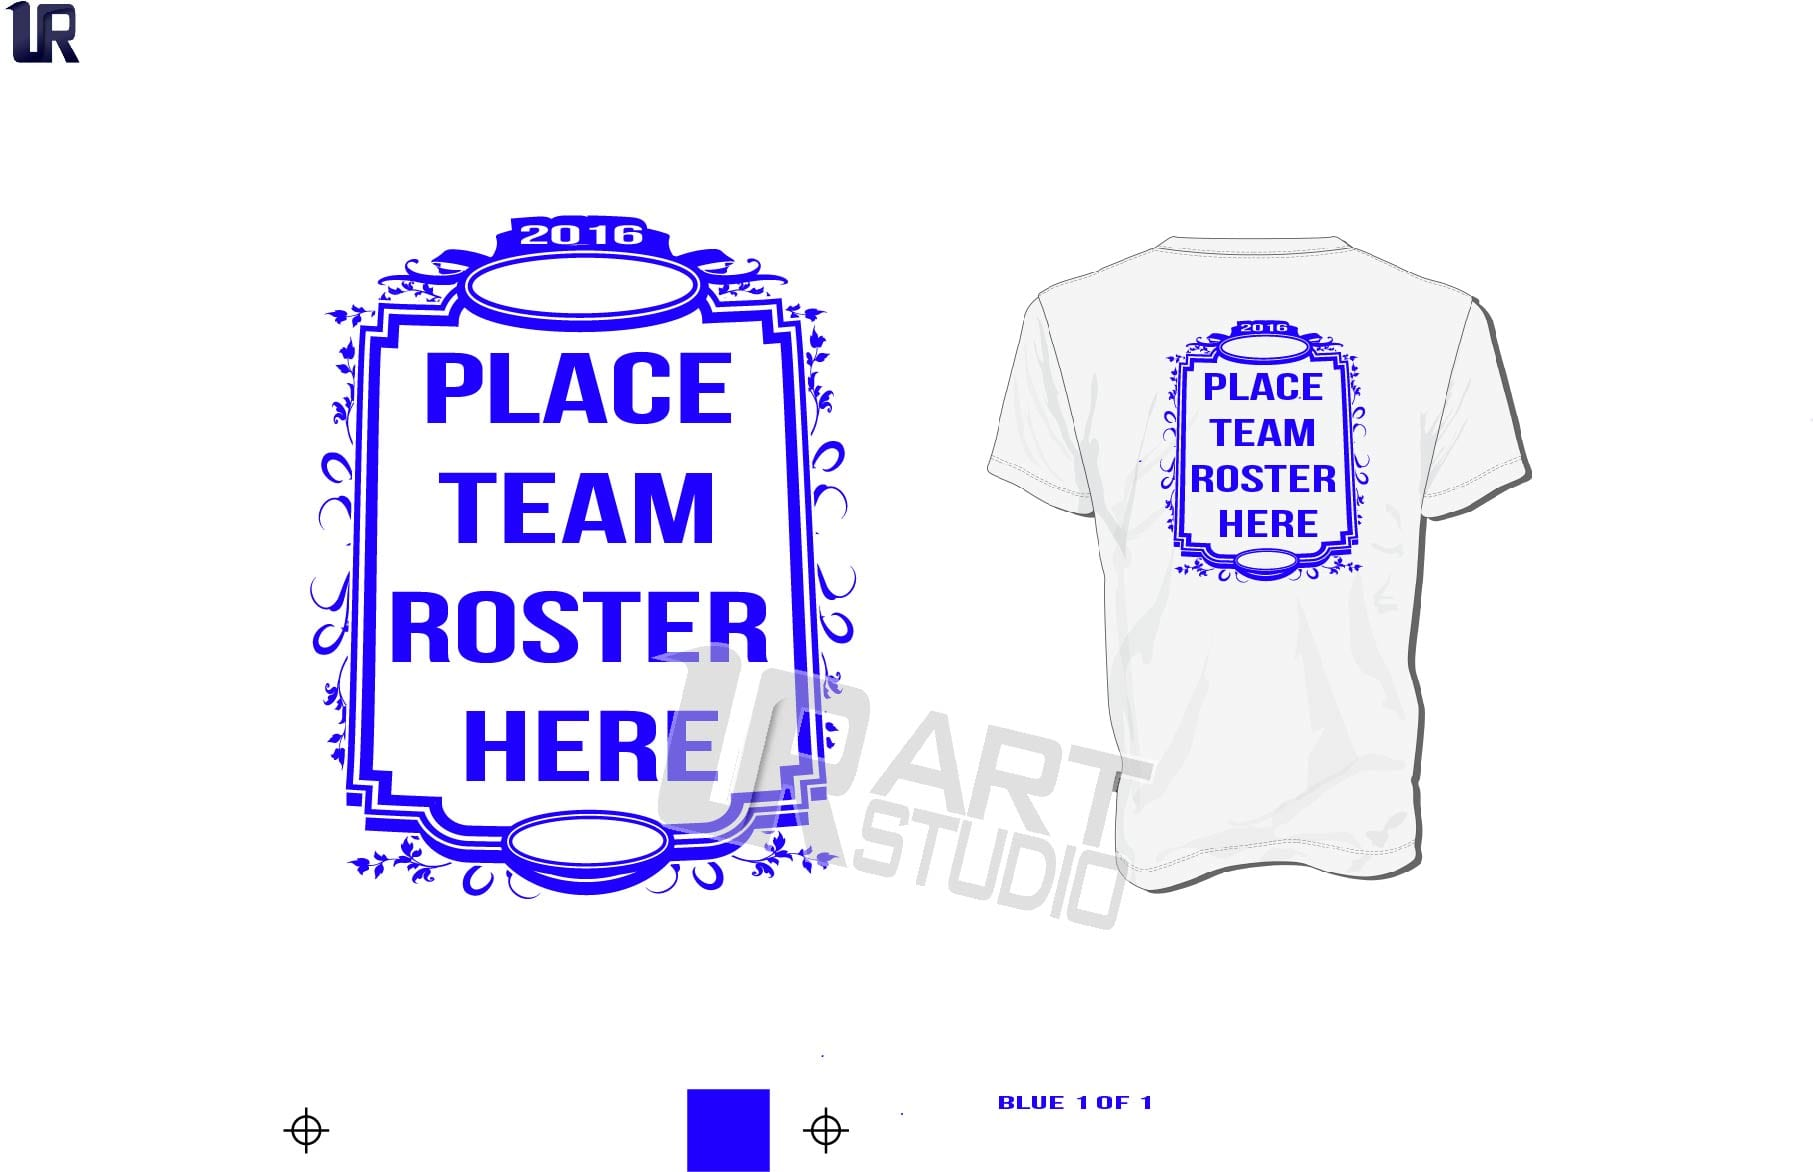 Back Frame Team Roster Vector Design for Team Roster Names one color black color seperated for screen print 2016 UrArtStudio